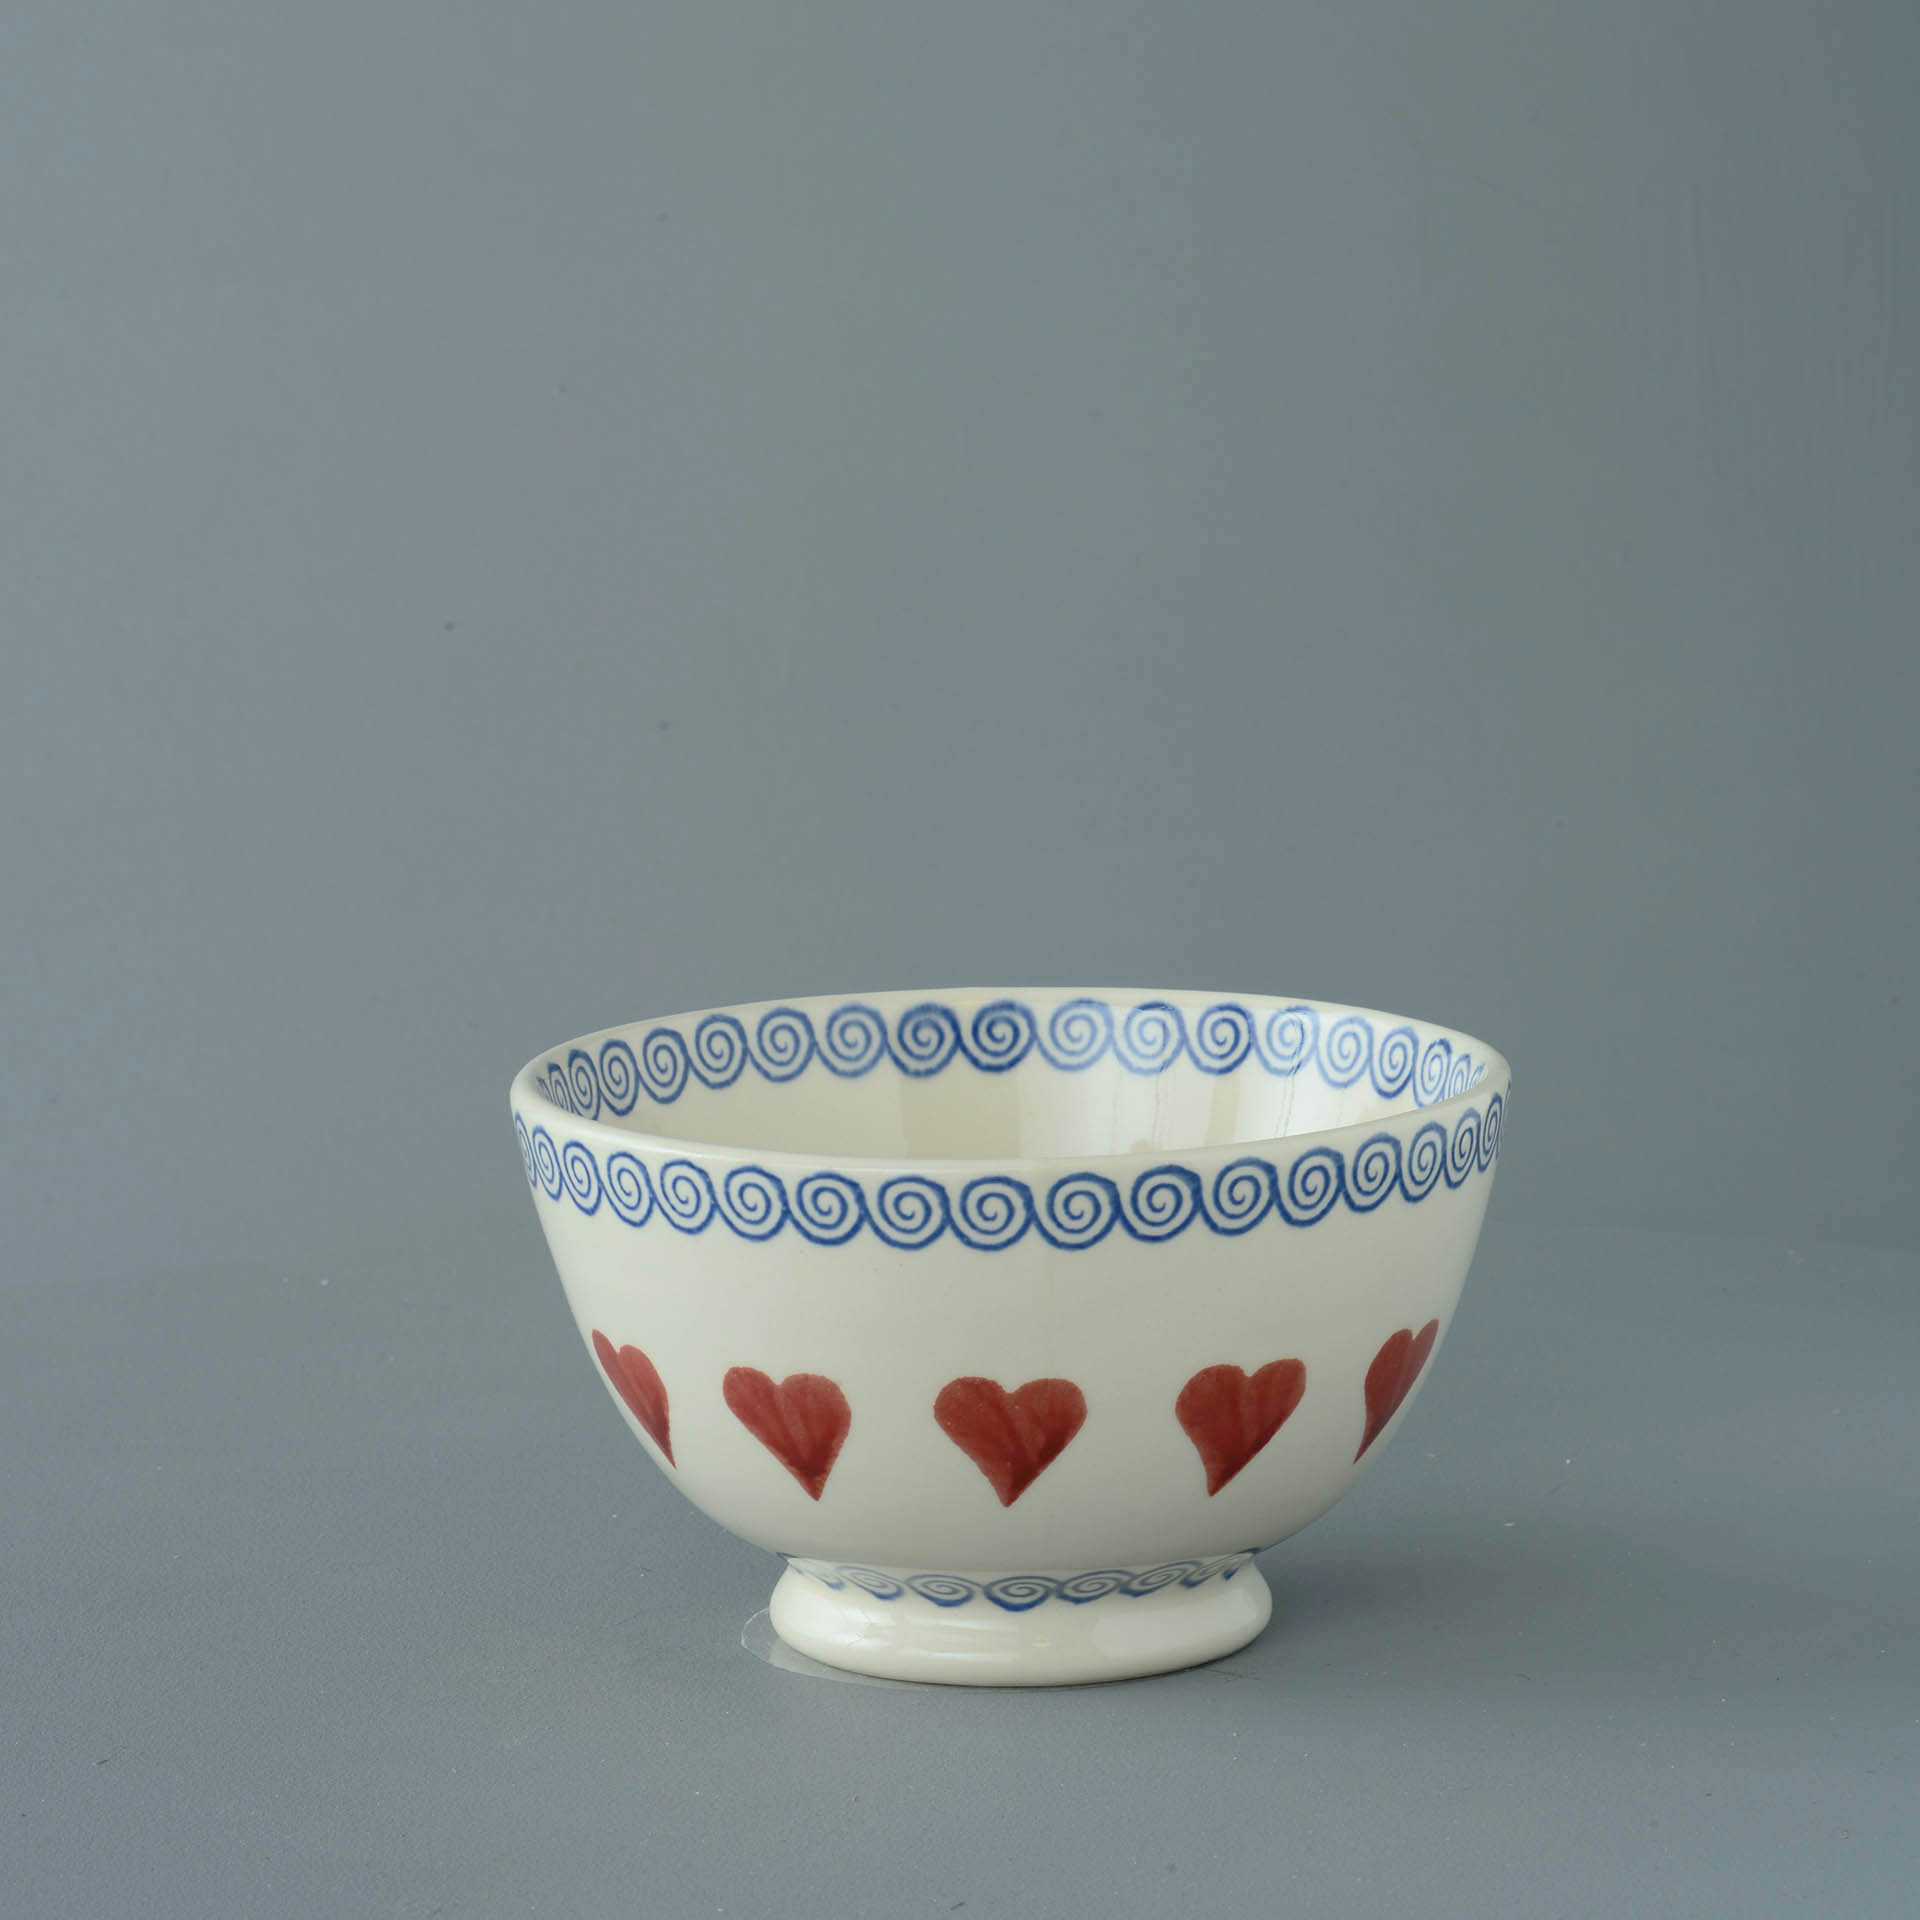 Hearts Soup Bowl 9 x 15.5cm